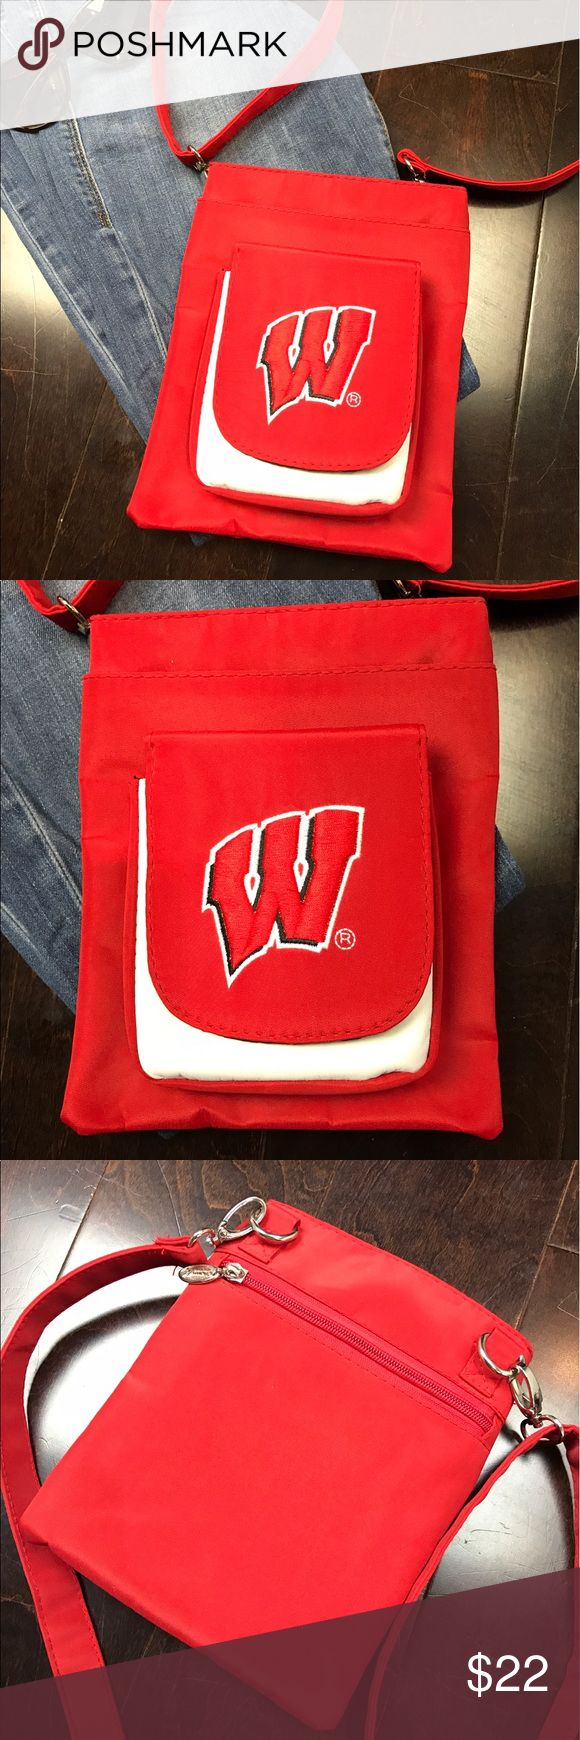 "Wisconsin Badgers Game Day Purse (Bag) Stylish, Trendy, In fashion!  Make this item part of your wardrobe today!  ❤️ Size  - Approximately 8"" Long x 7"" Wide ❤️ Over the Shoulder or Crossbody w/ adjustable strap ❤️ Snap Pocket in front / Extra Zipper Pocket in back / Durable Zipper Middle ❤️ Color - Red & White (Go Badgers)  Please ""comment"" below with questions on this listing or other listings in my closet.  I accept resonable offers!  Please, no trades.  The other items pictured are not…"